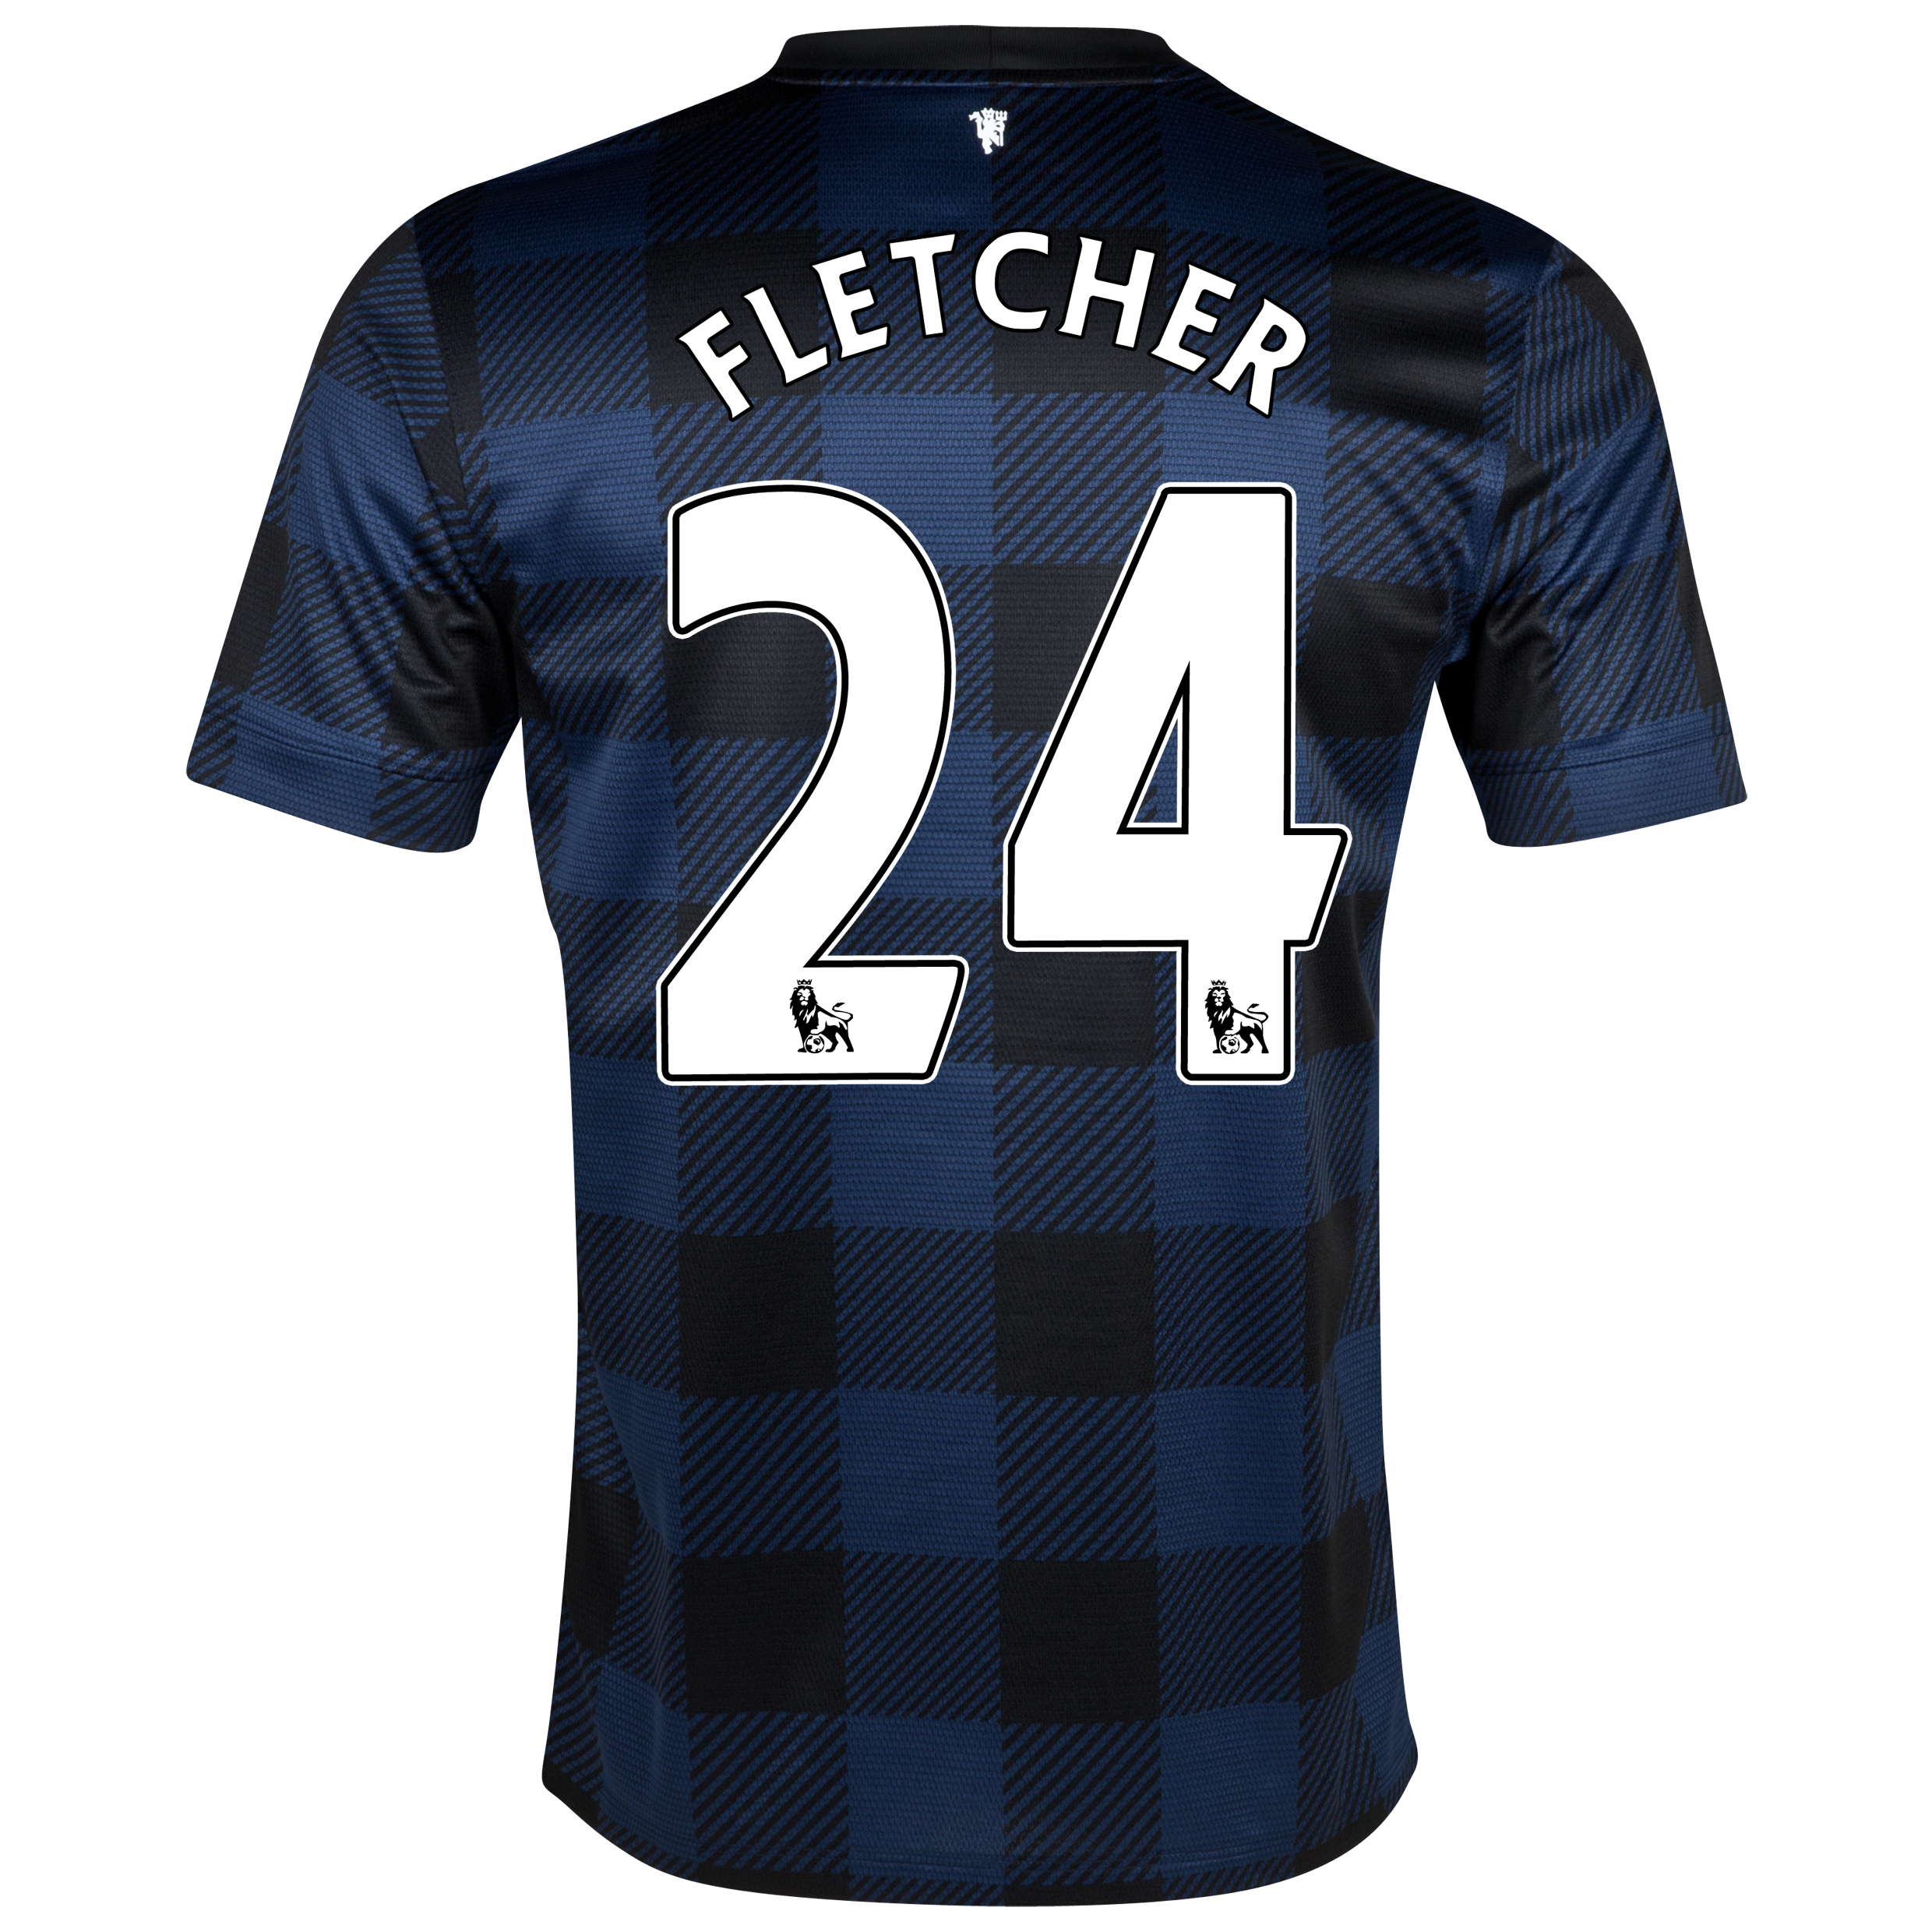 Manchester United Away Shirt 2013/14 with Fletcher 24 printing